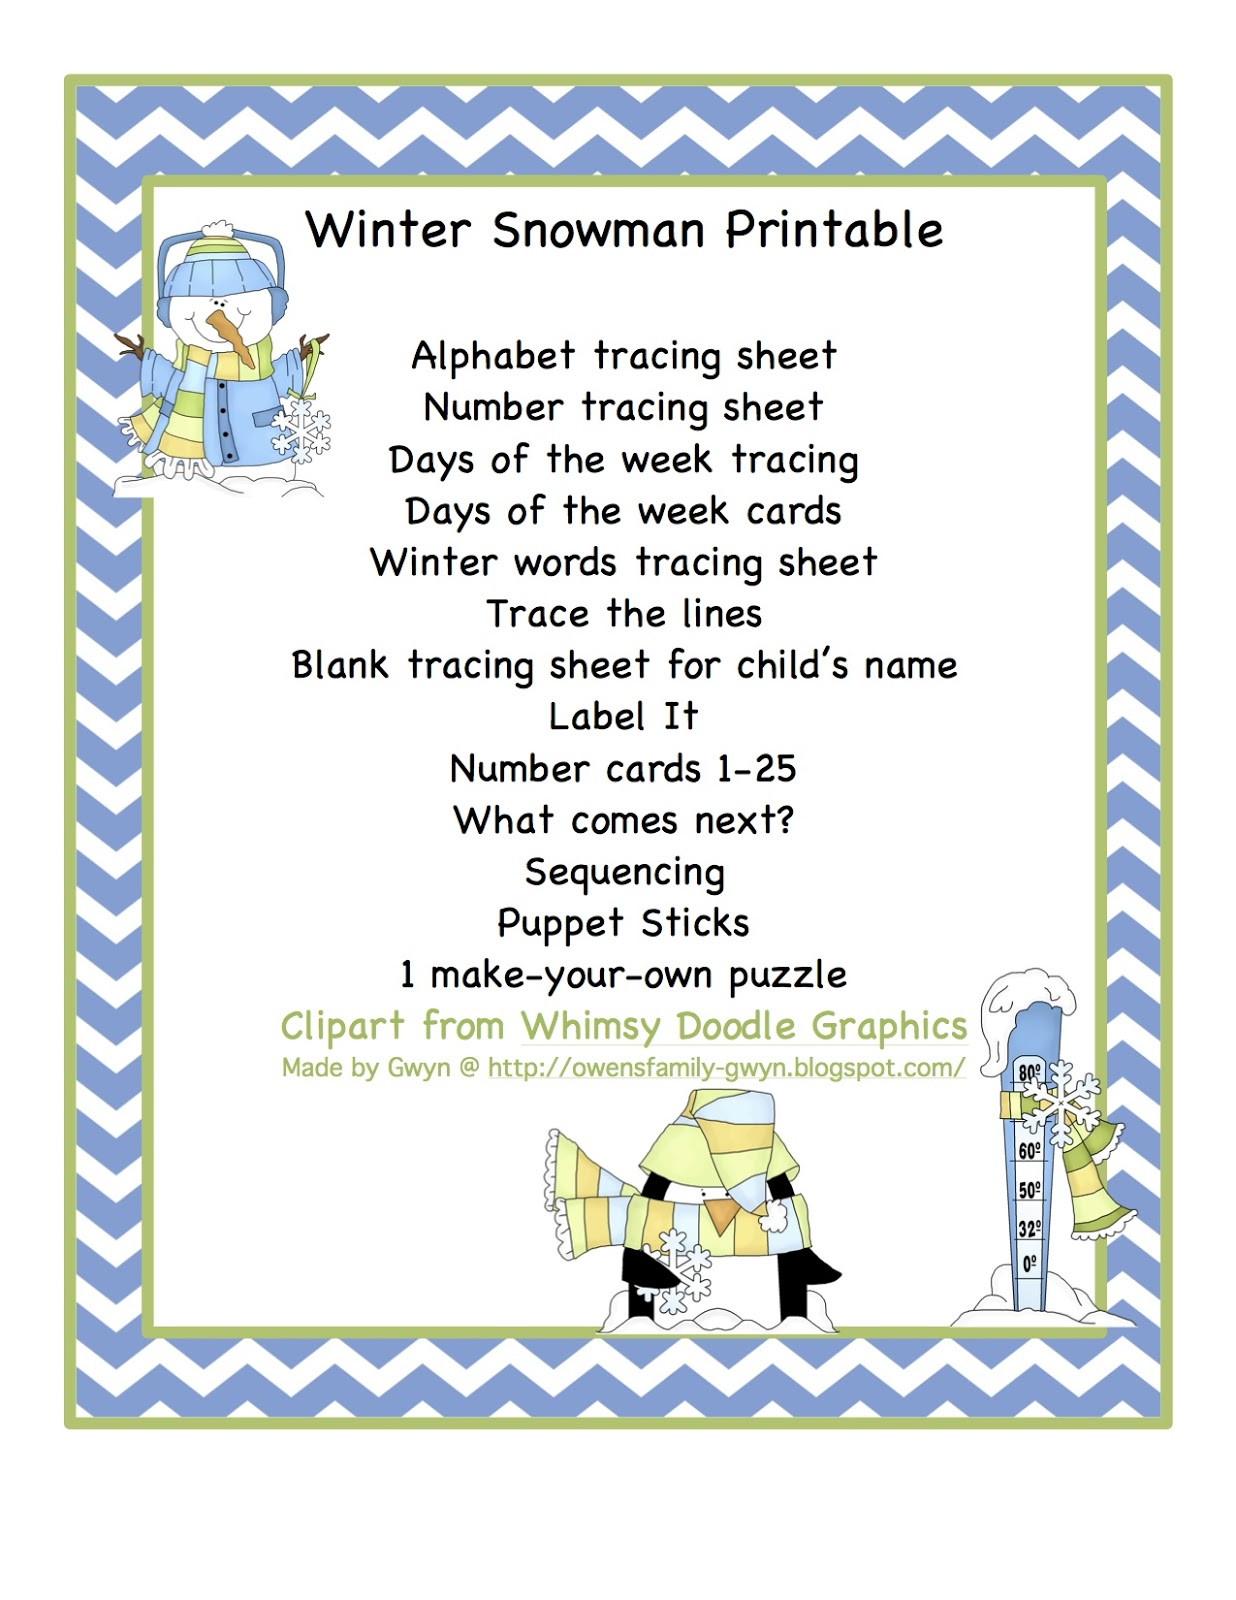 snowman sequencing cards printable